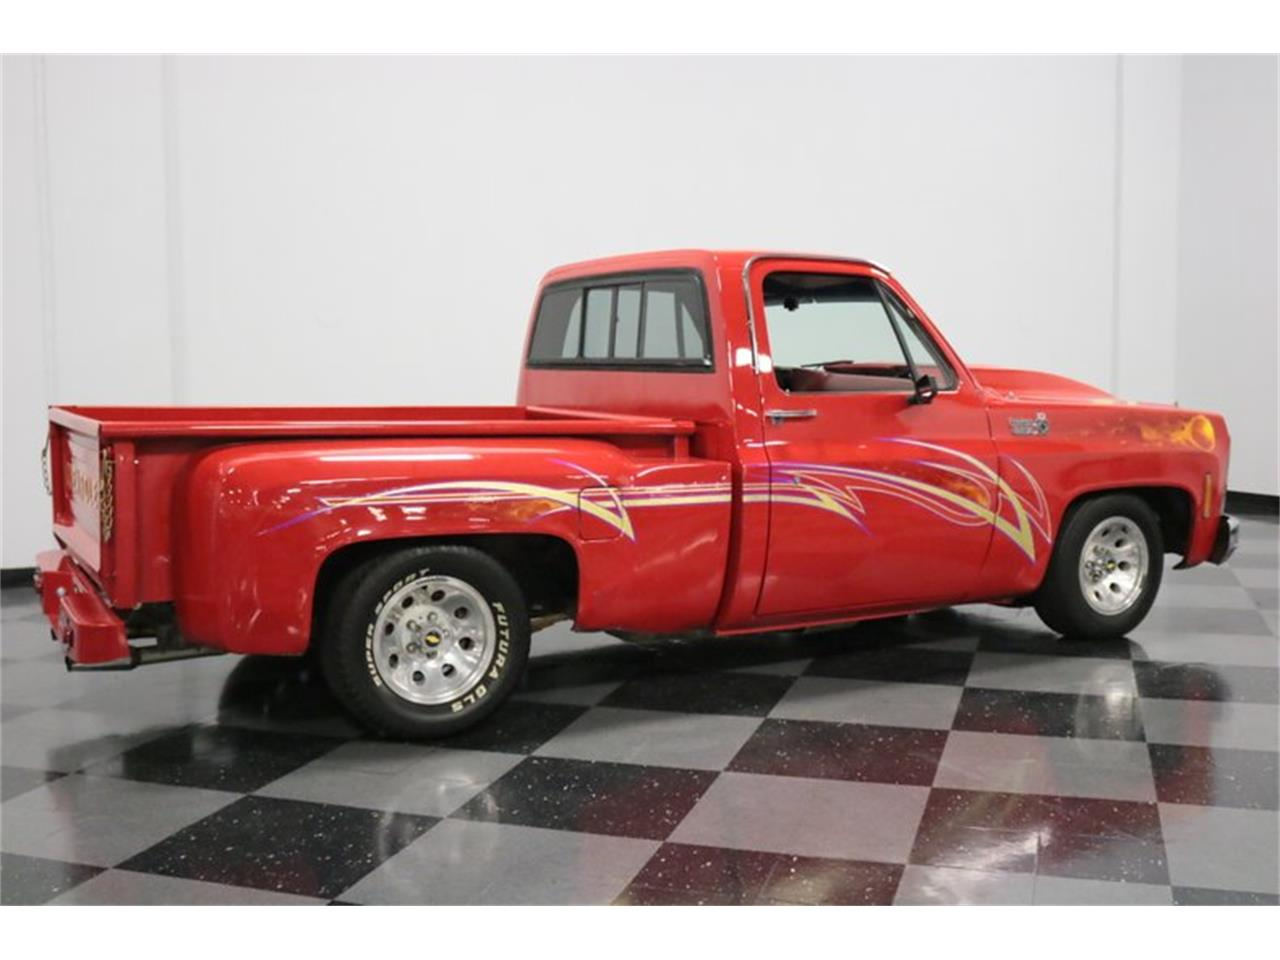 Large Picture of 1979 Chevrolet C10 located in Texas - $22,995.00 Offered by Streetside Classics - Dallas / Fort Worth - QAW7